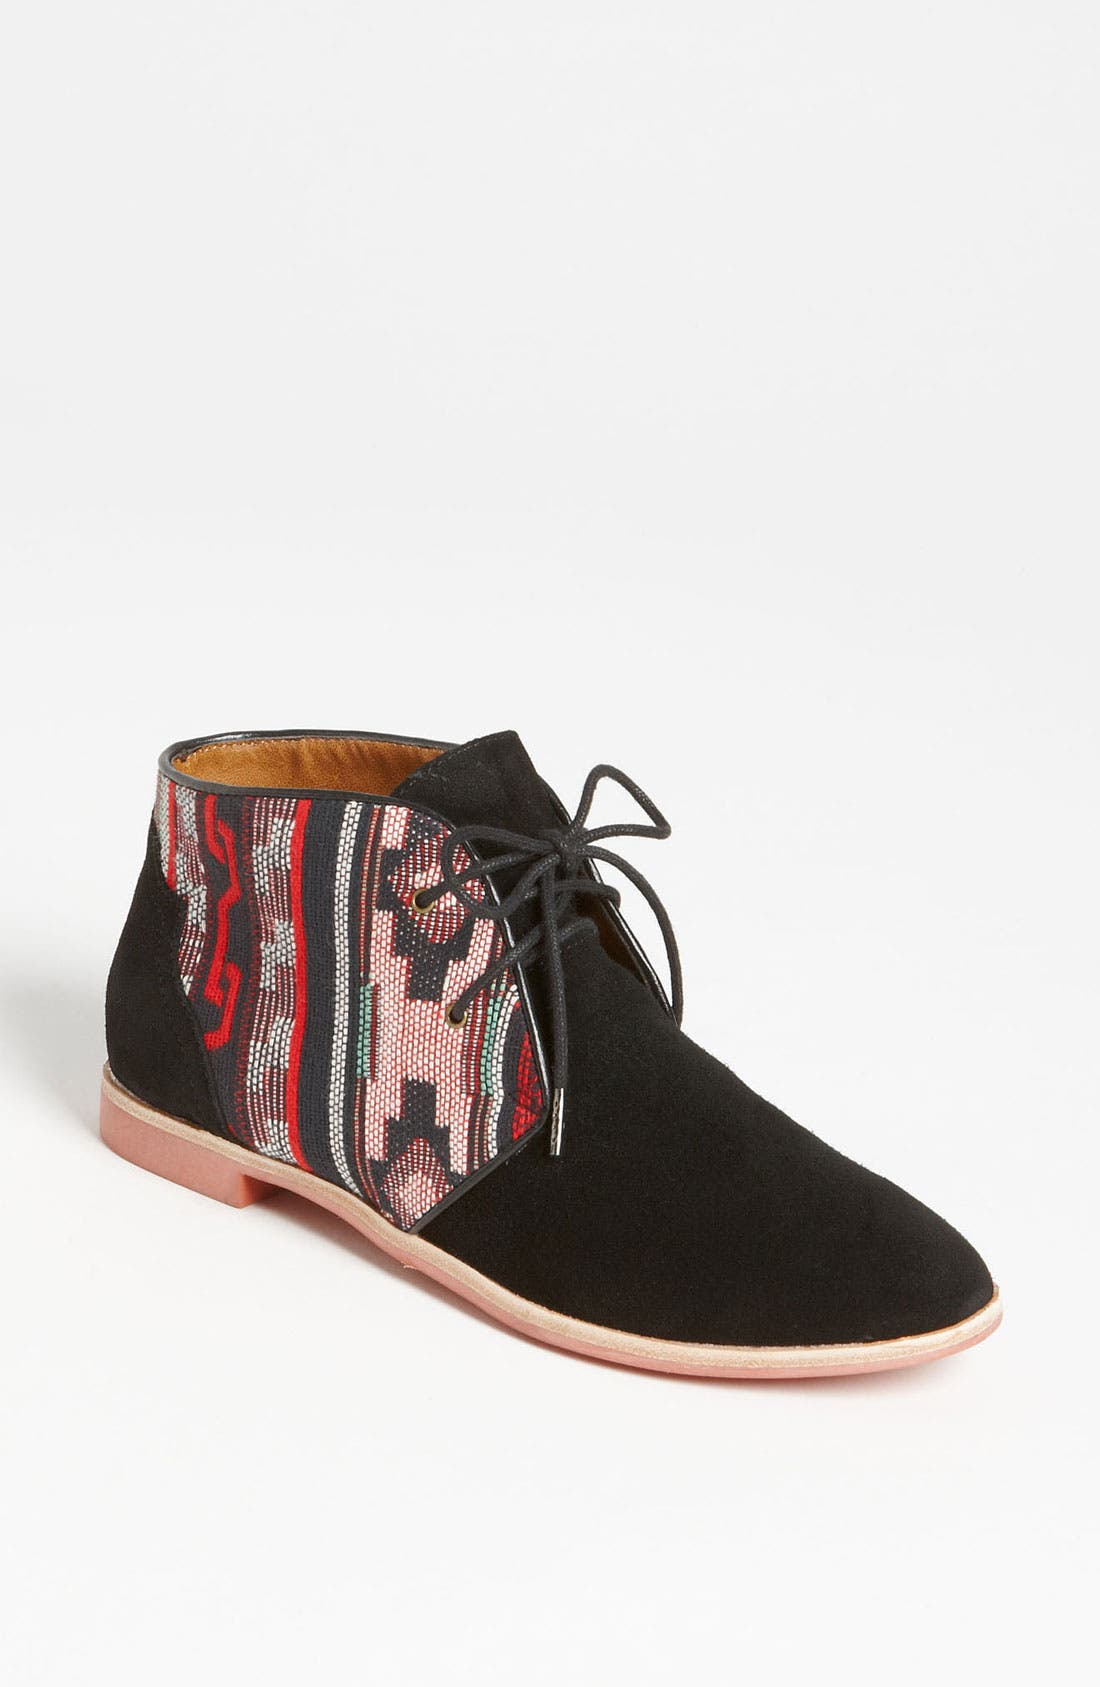 Main Image - DV by Dolce Vita 'Mali' Bootie (Online Exclusive)